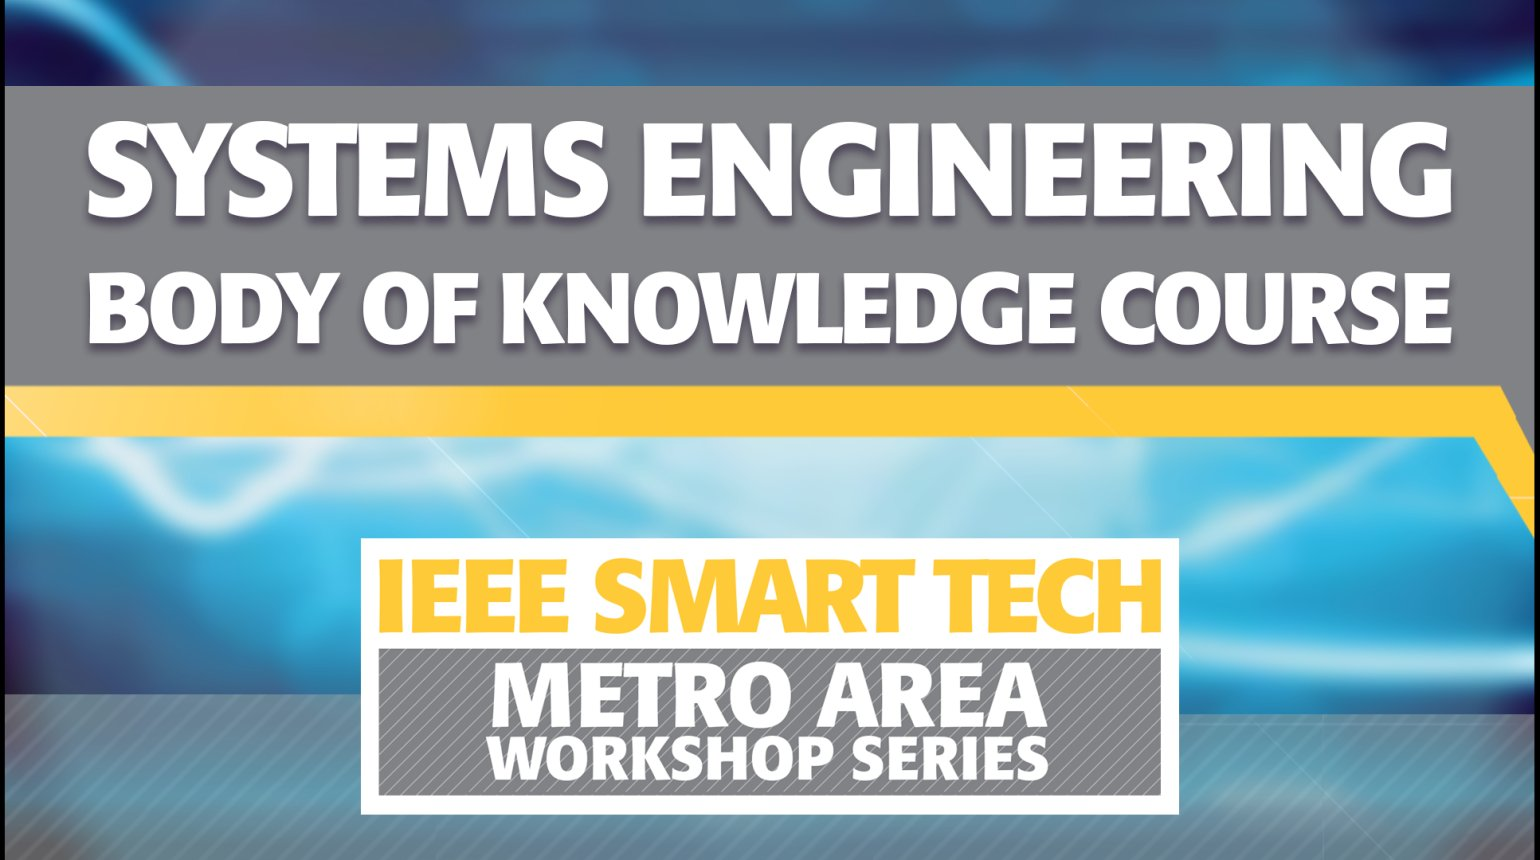 Systems Engineering Body of Knowledge Course - IEEE Smart Tech